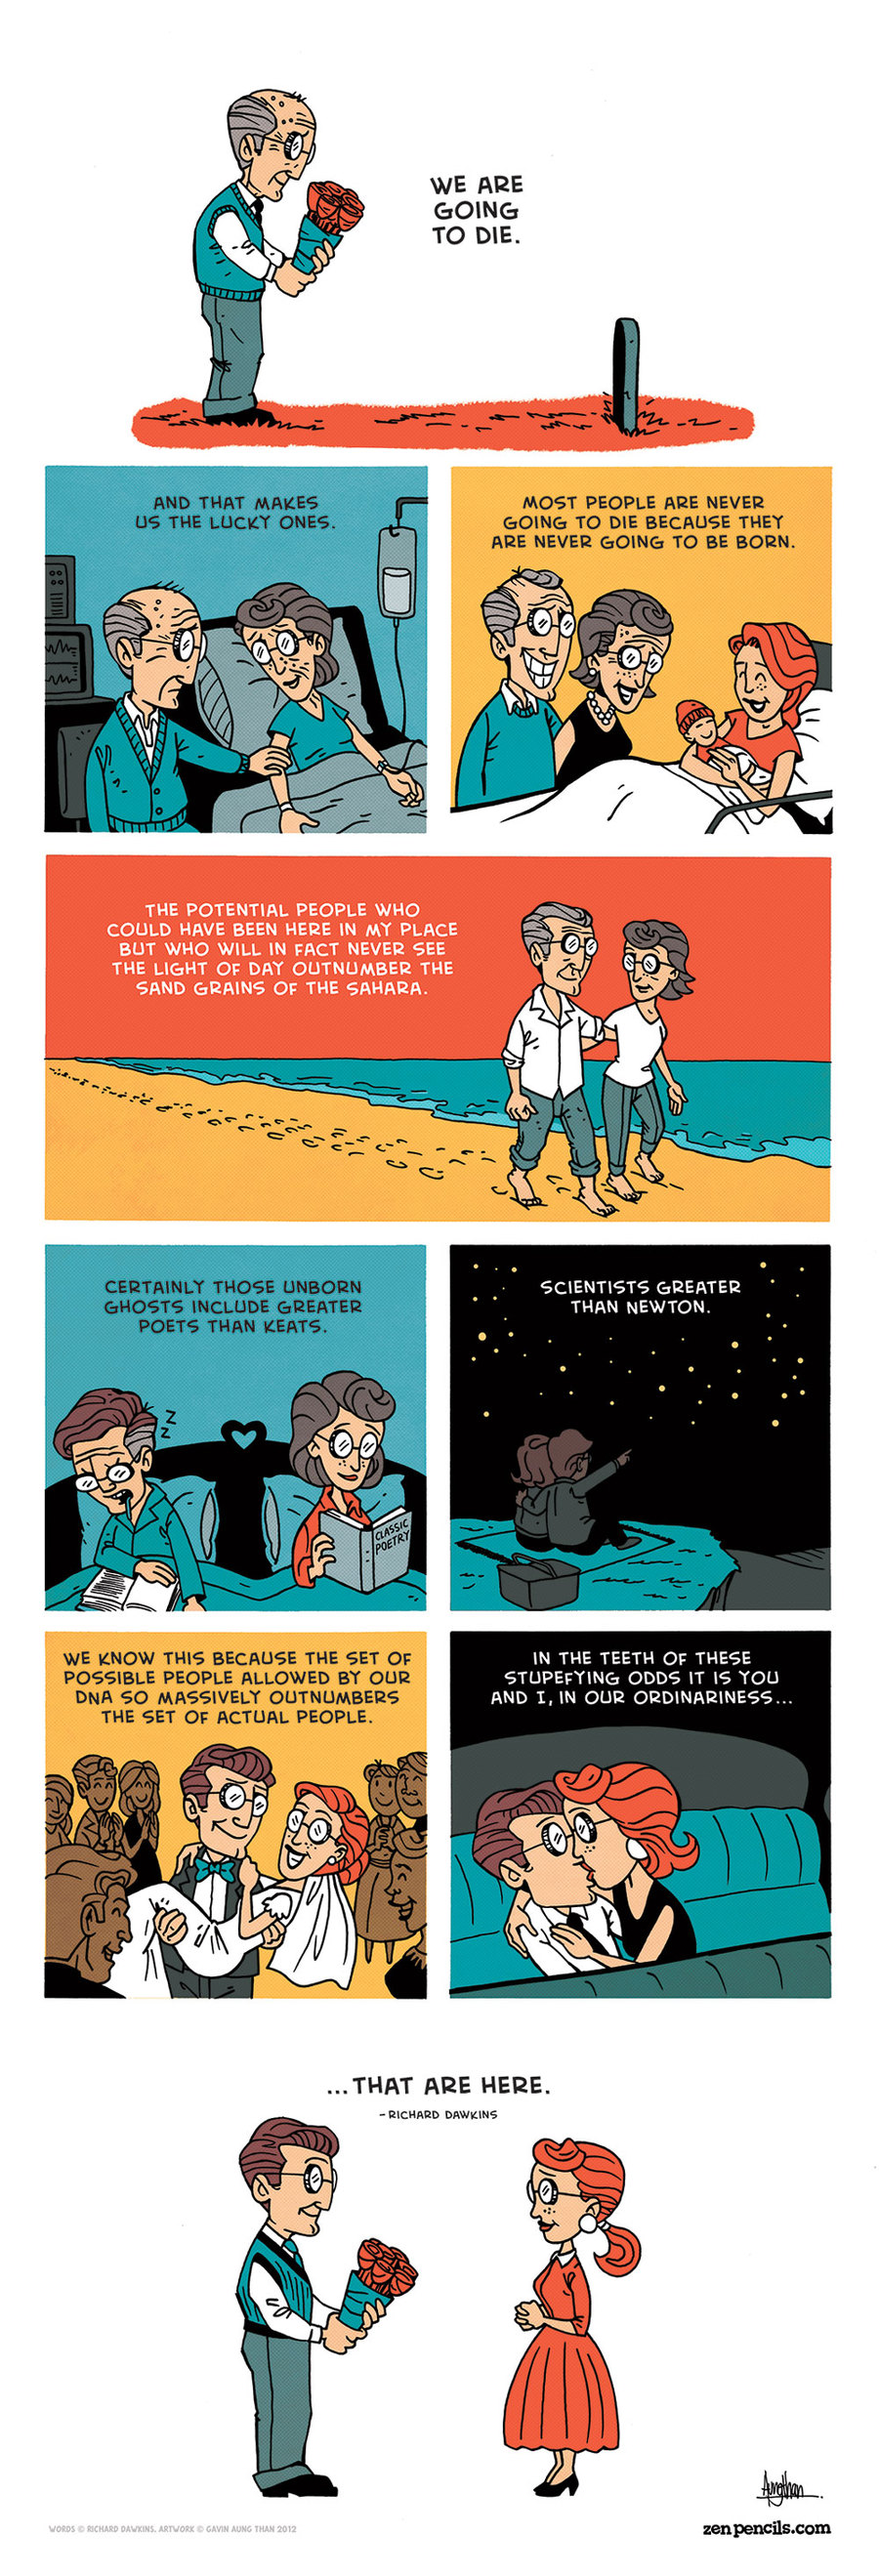 Zen Pencils for Dec 27, 2013 Comic Strip